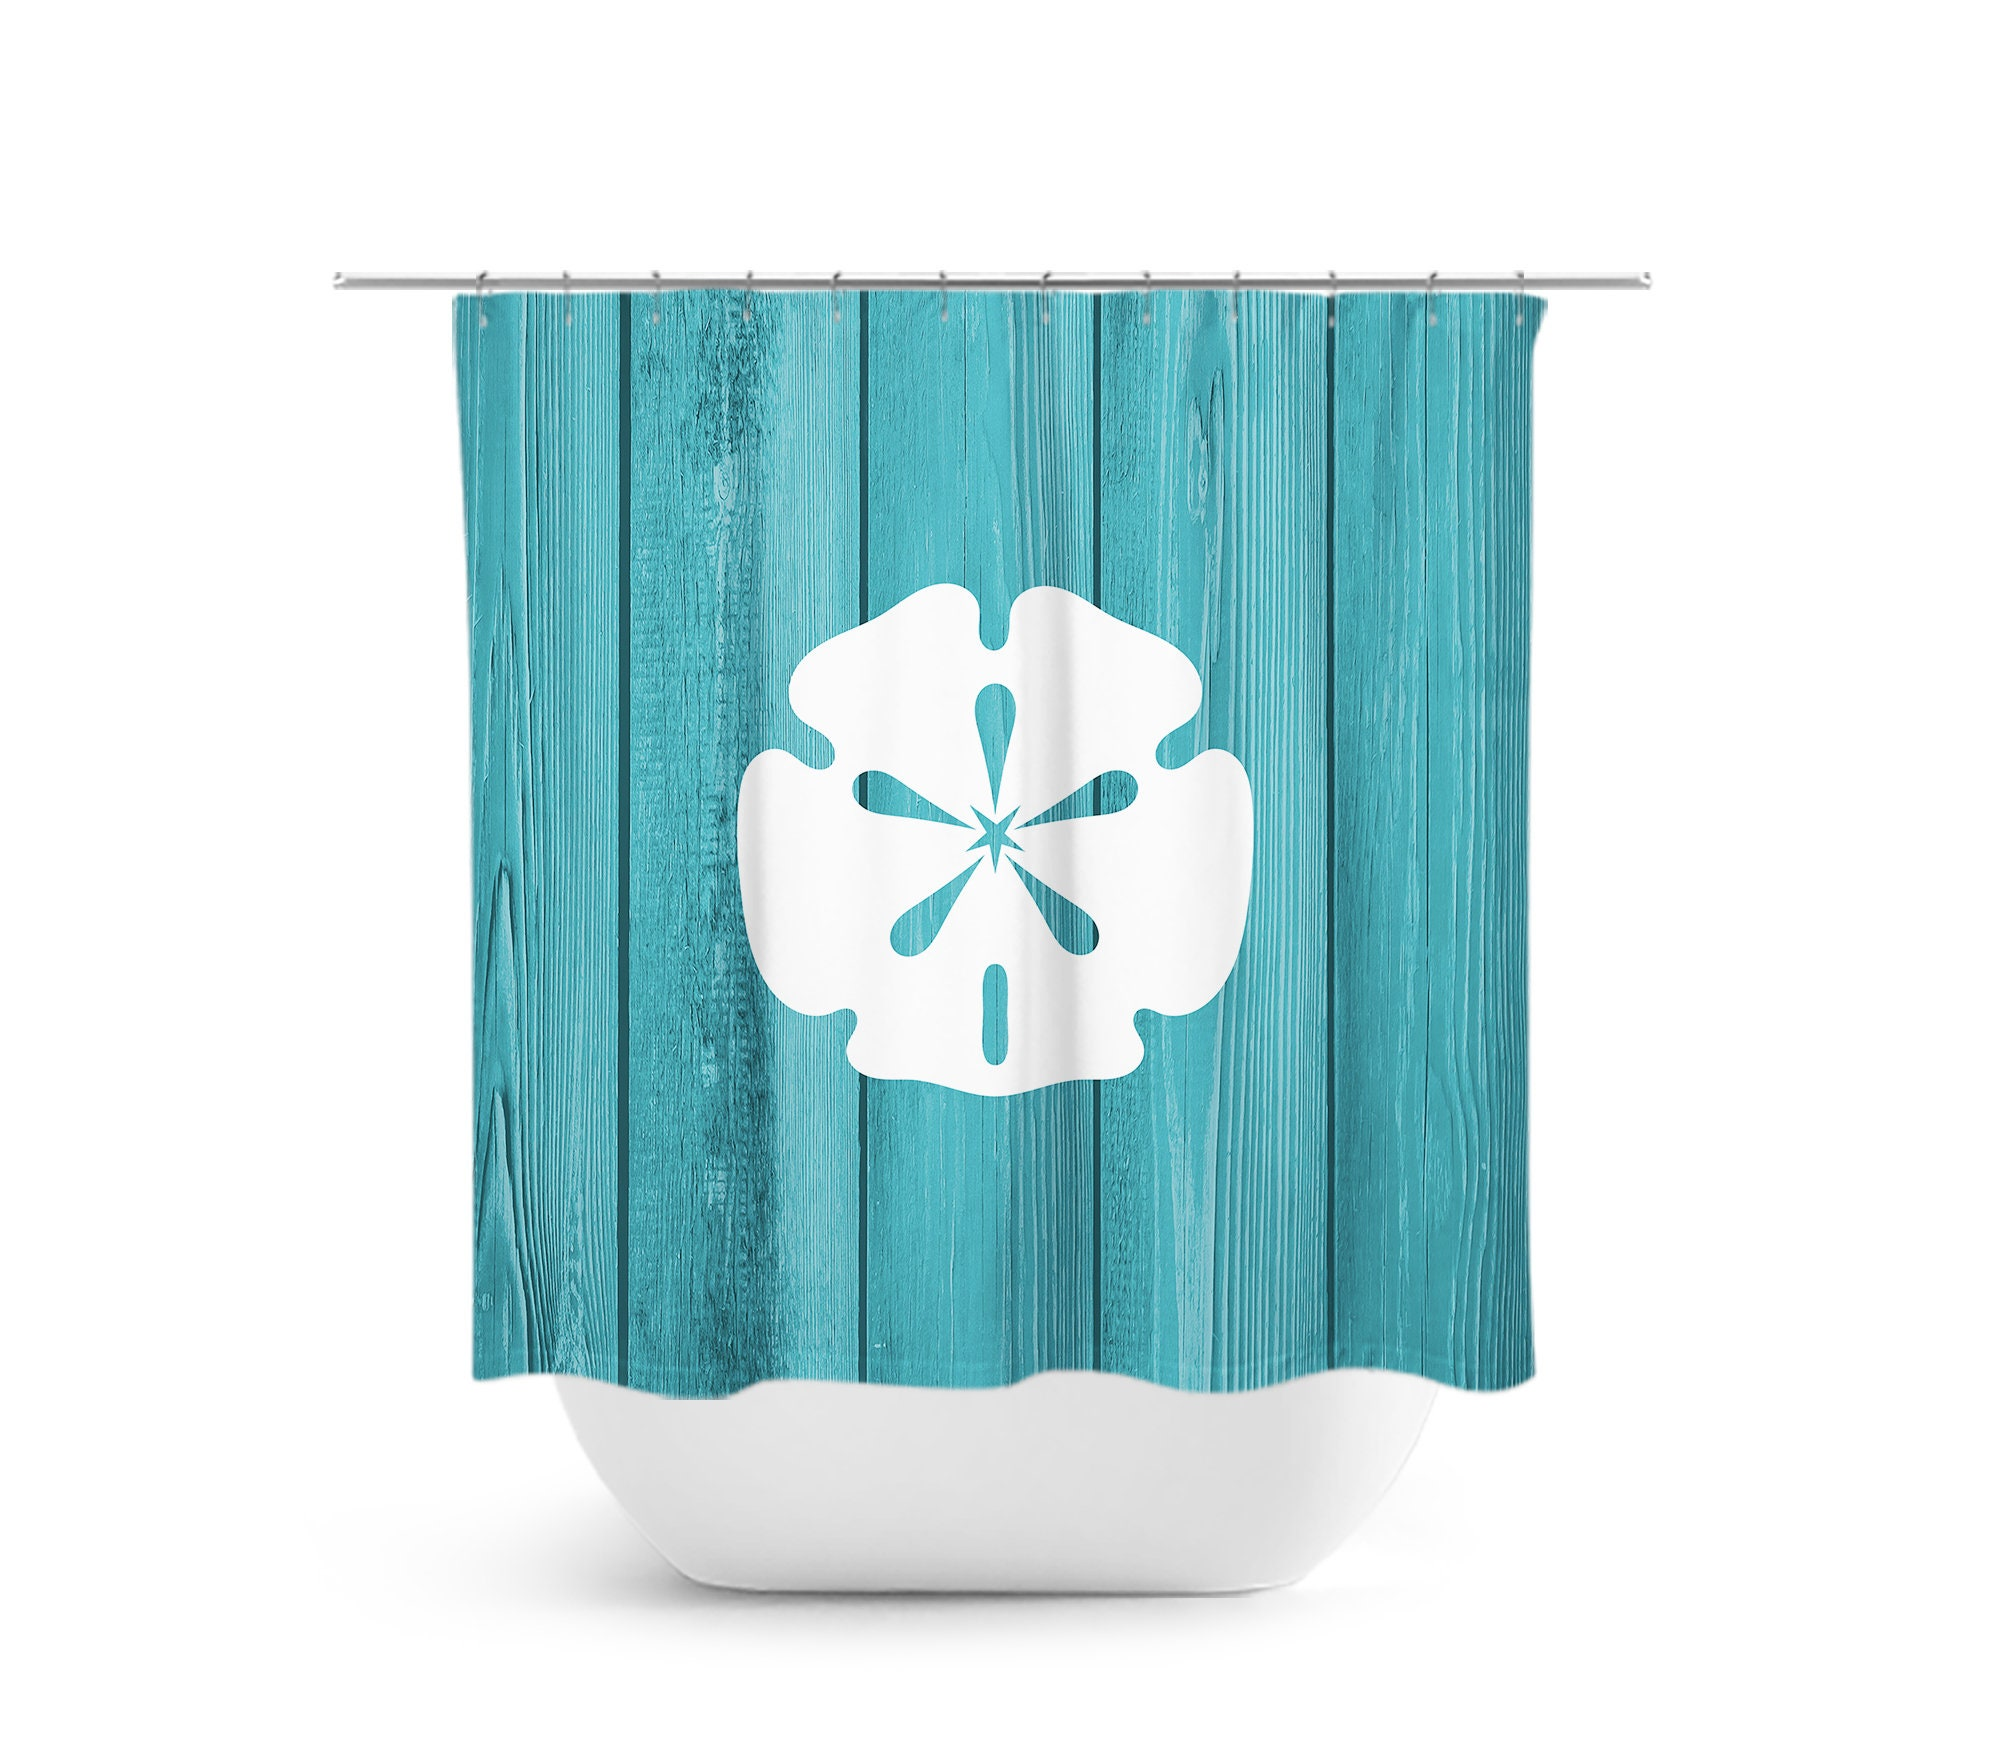 Beach House Shower Curtain Sand Dollar Bath Nautical Bathroom Decor Teal